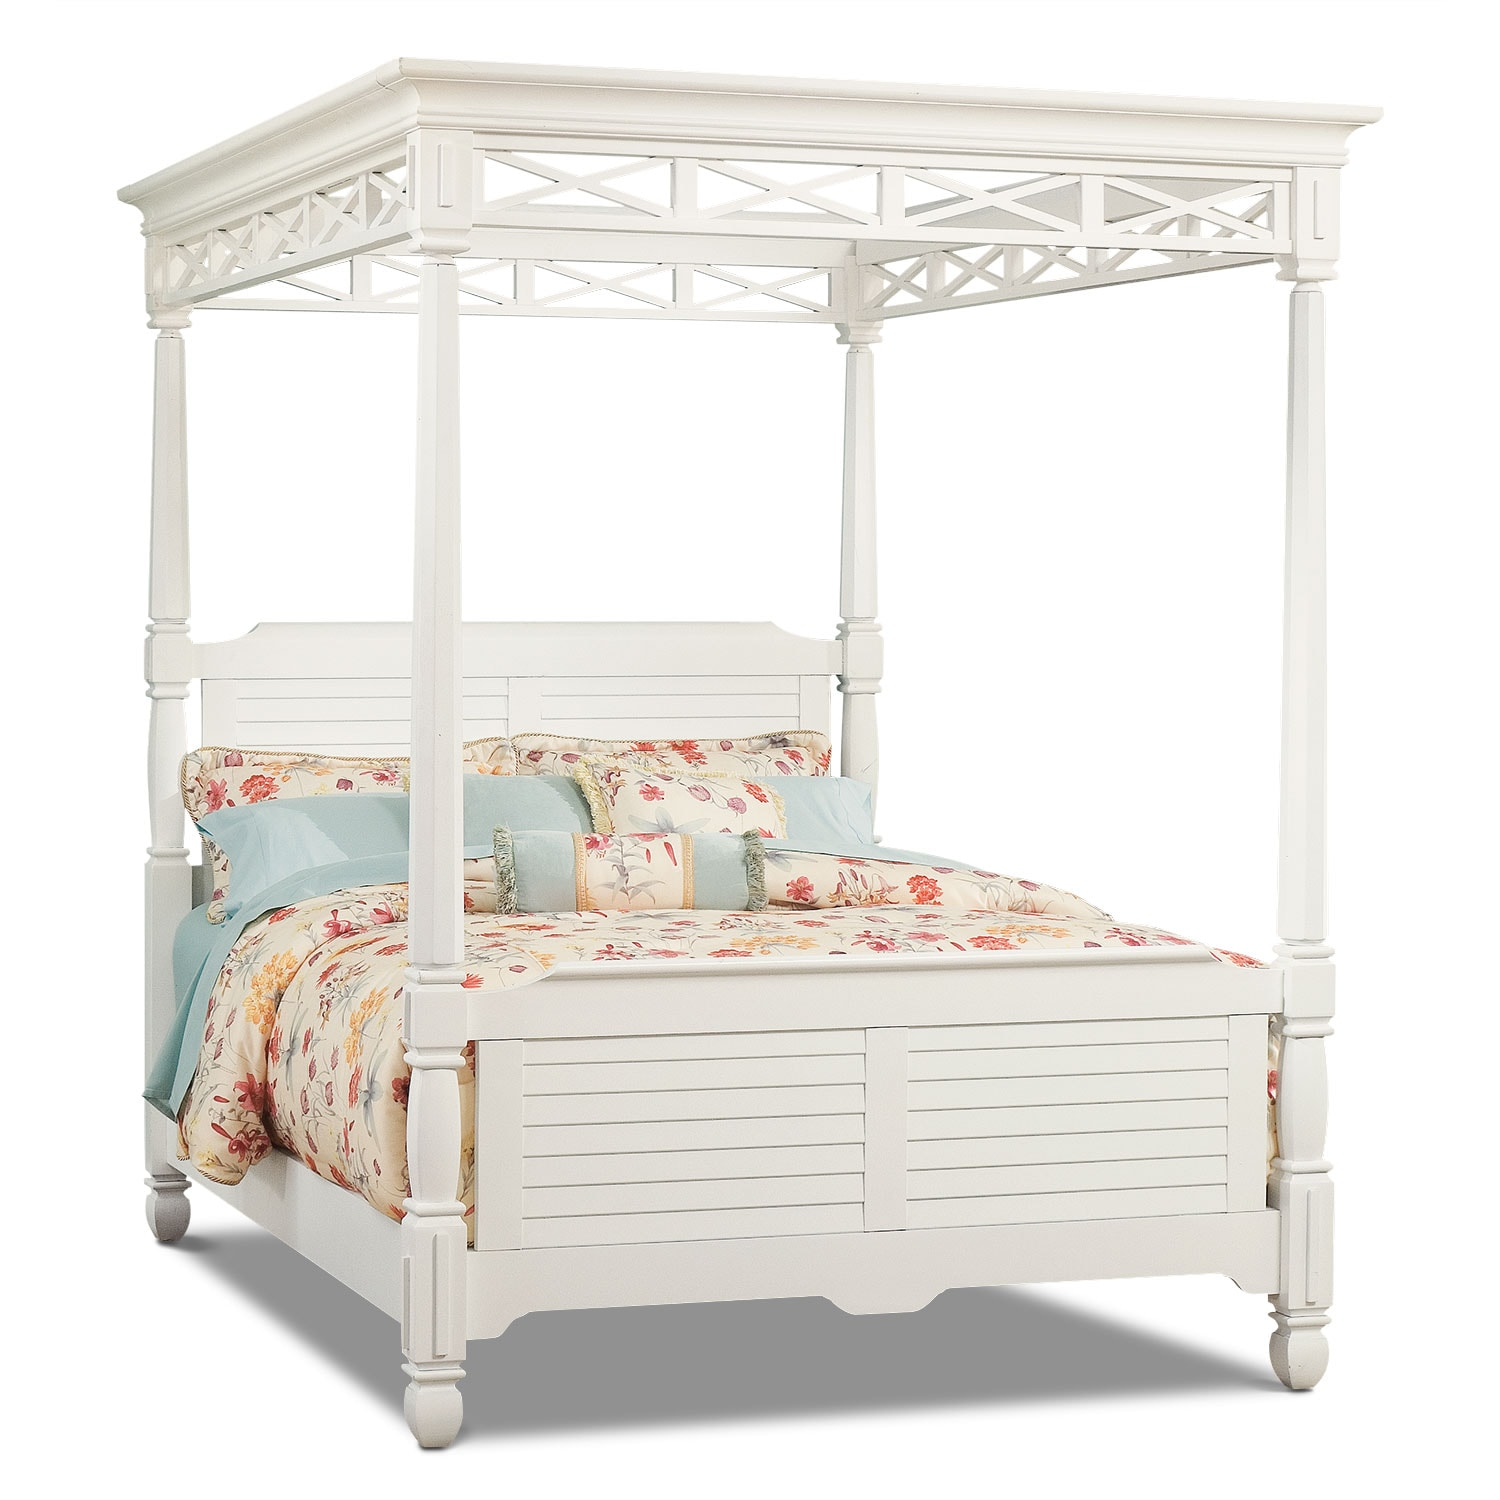 Plantation Cove Queen Canopy Bed - White